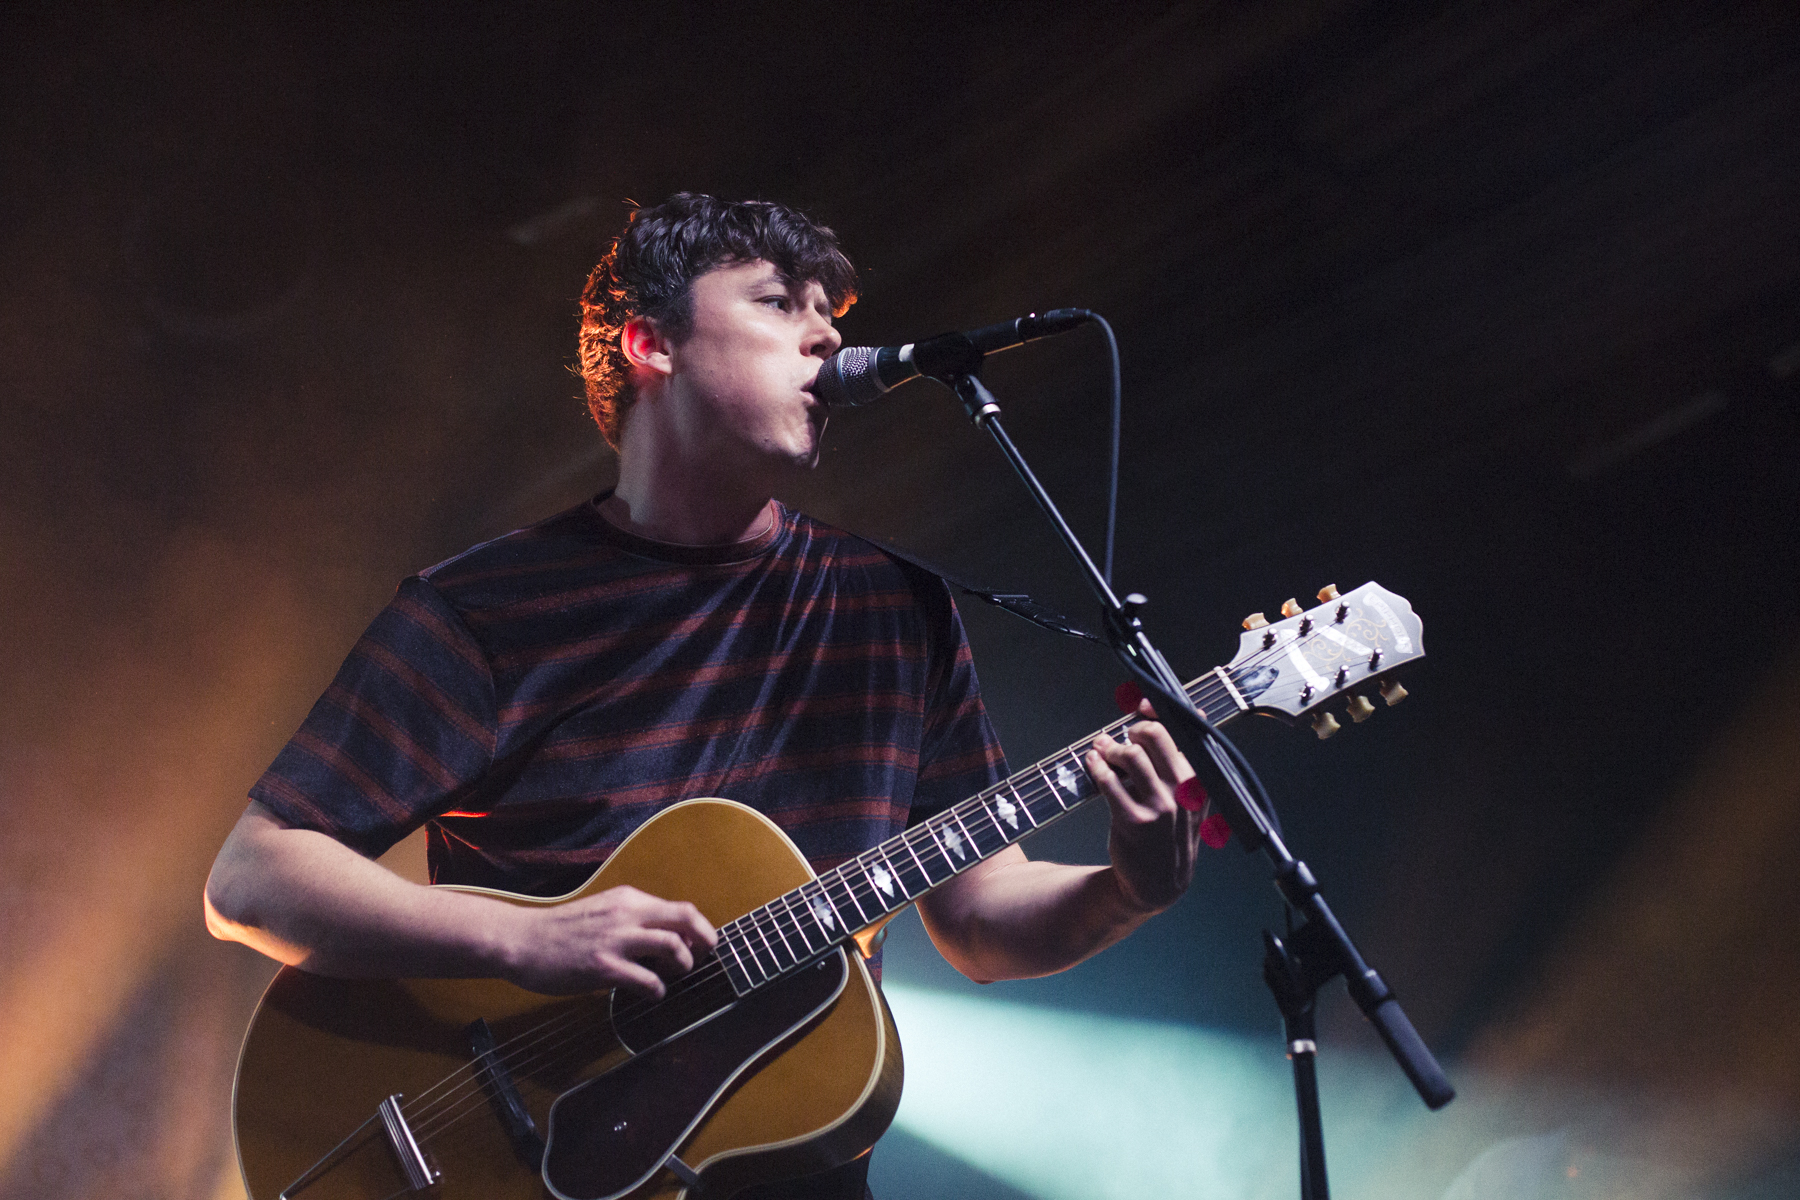 JAW_FrontBottoms-0186.jpg